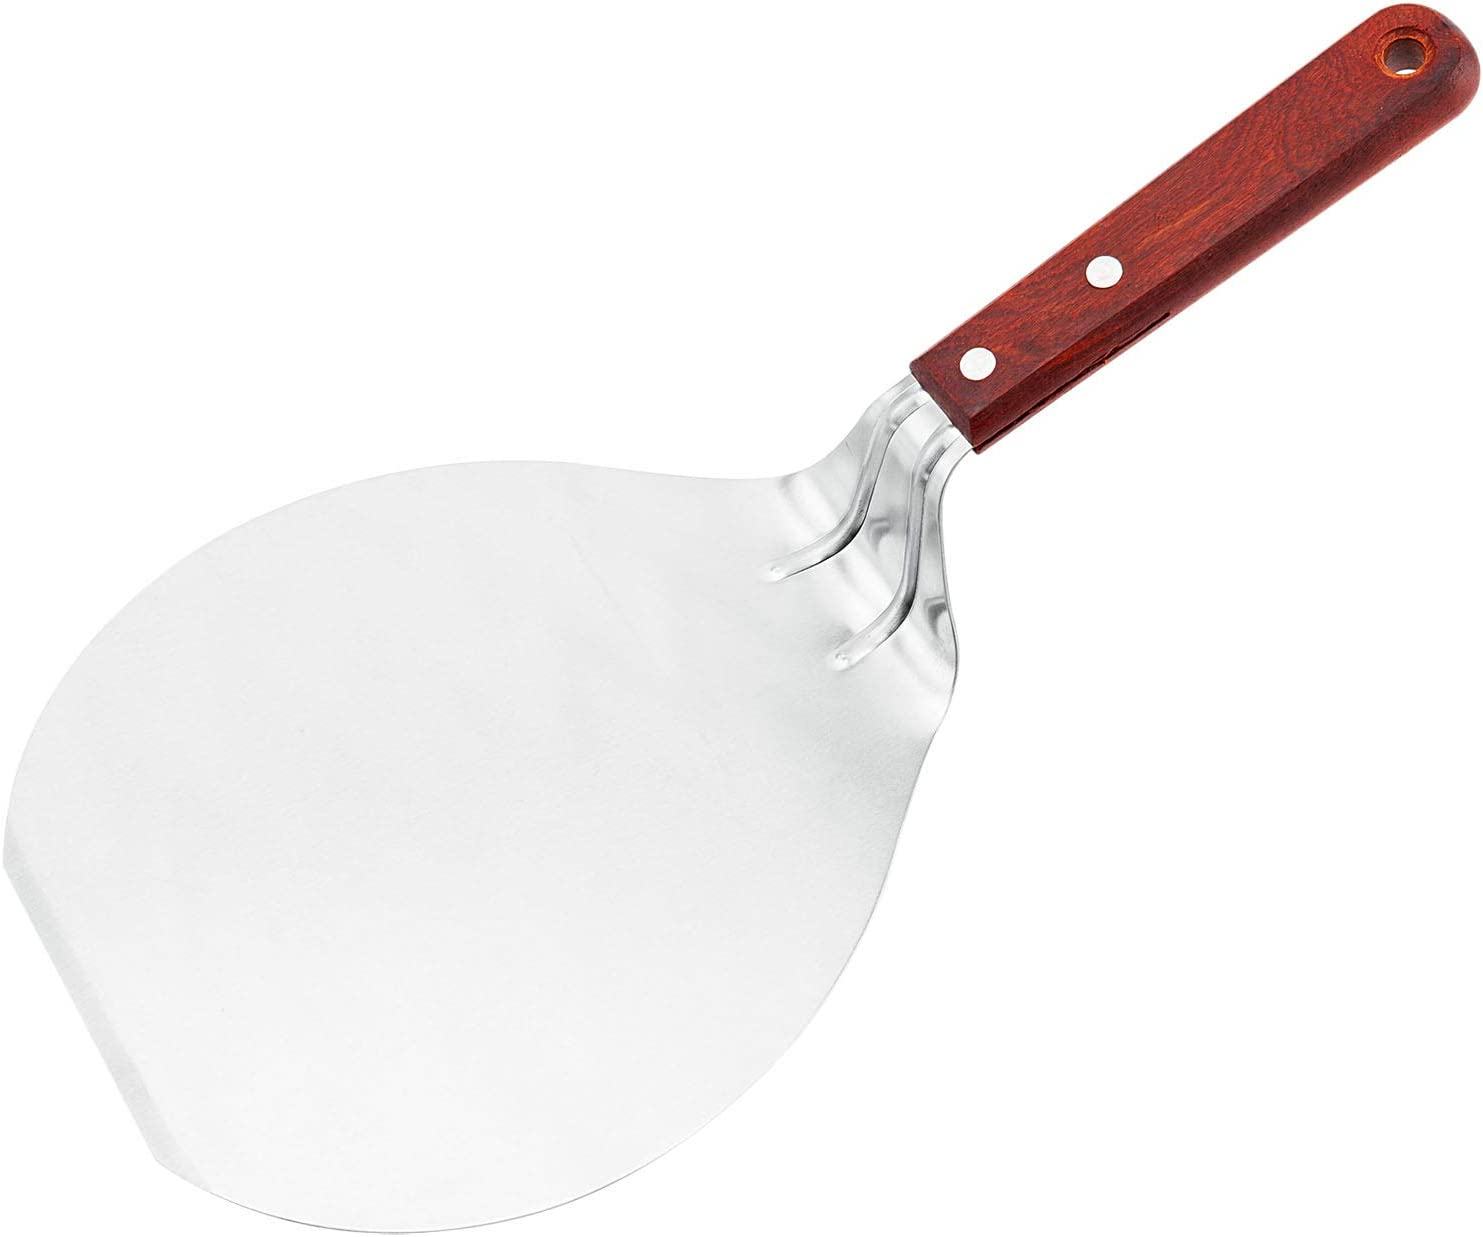 B01N9ETTTW Cake Safe Lifter Transfer Shovel, 8-inch Stainless Steel Cookie Spatula Pizza Paddle Peel Pancake Tray Fondant Moving Paste Tool Bread Pan, Bottom Mover Scraper for Kitchen Baking 612Bsr2Z2bTL